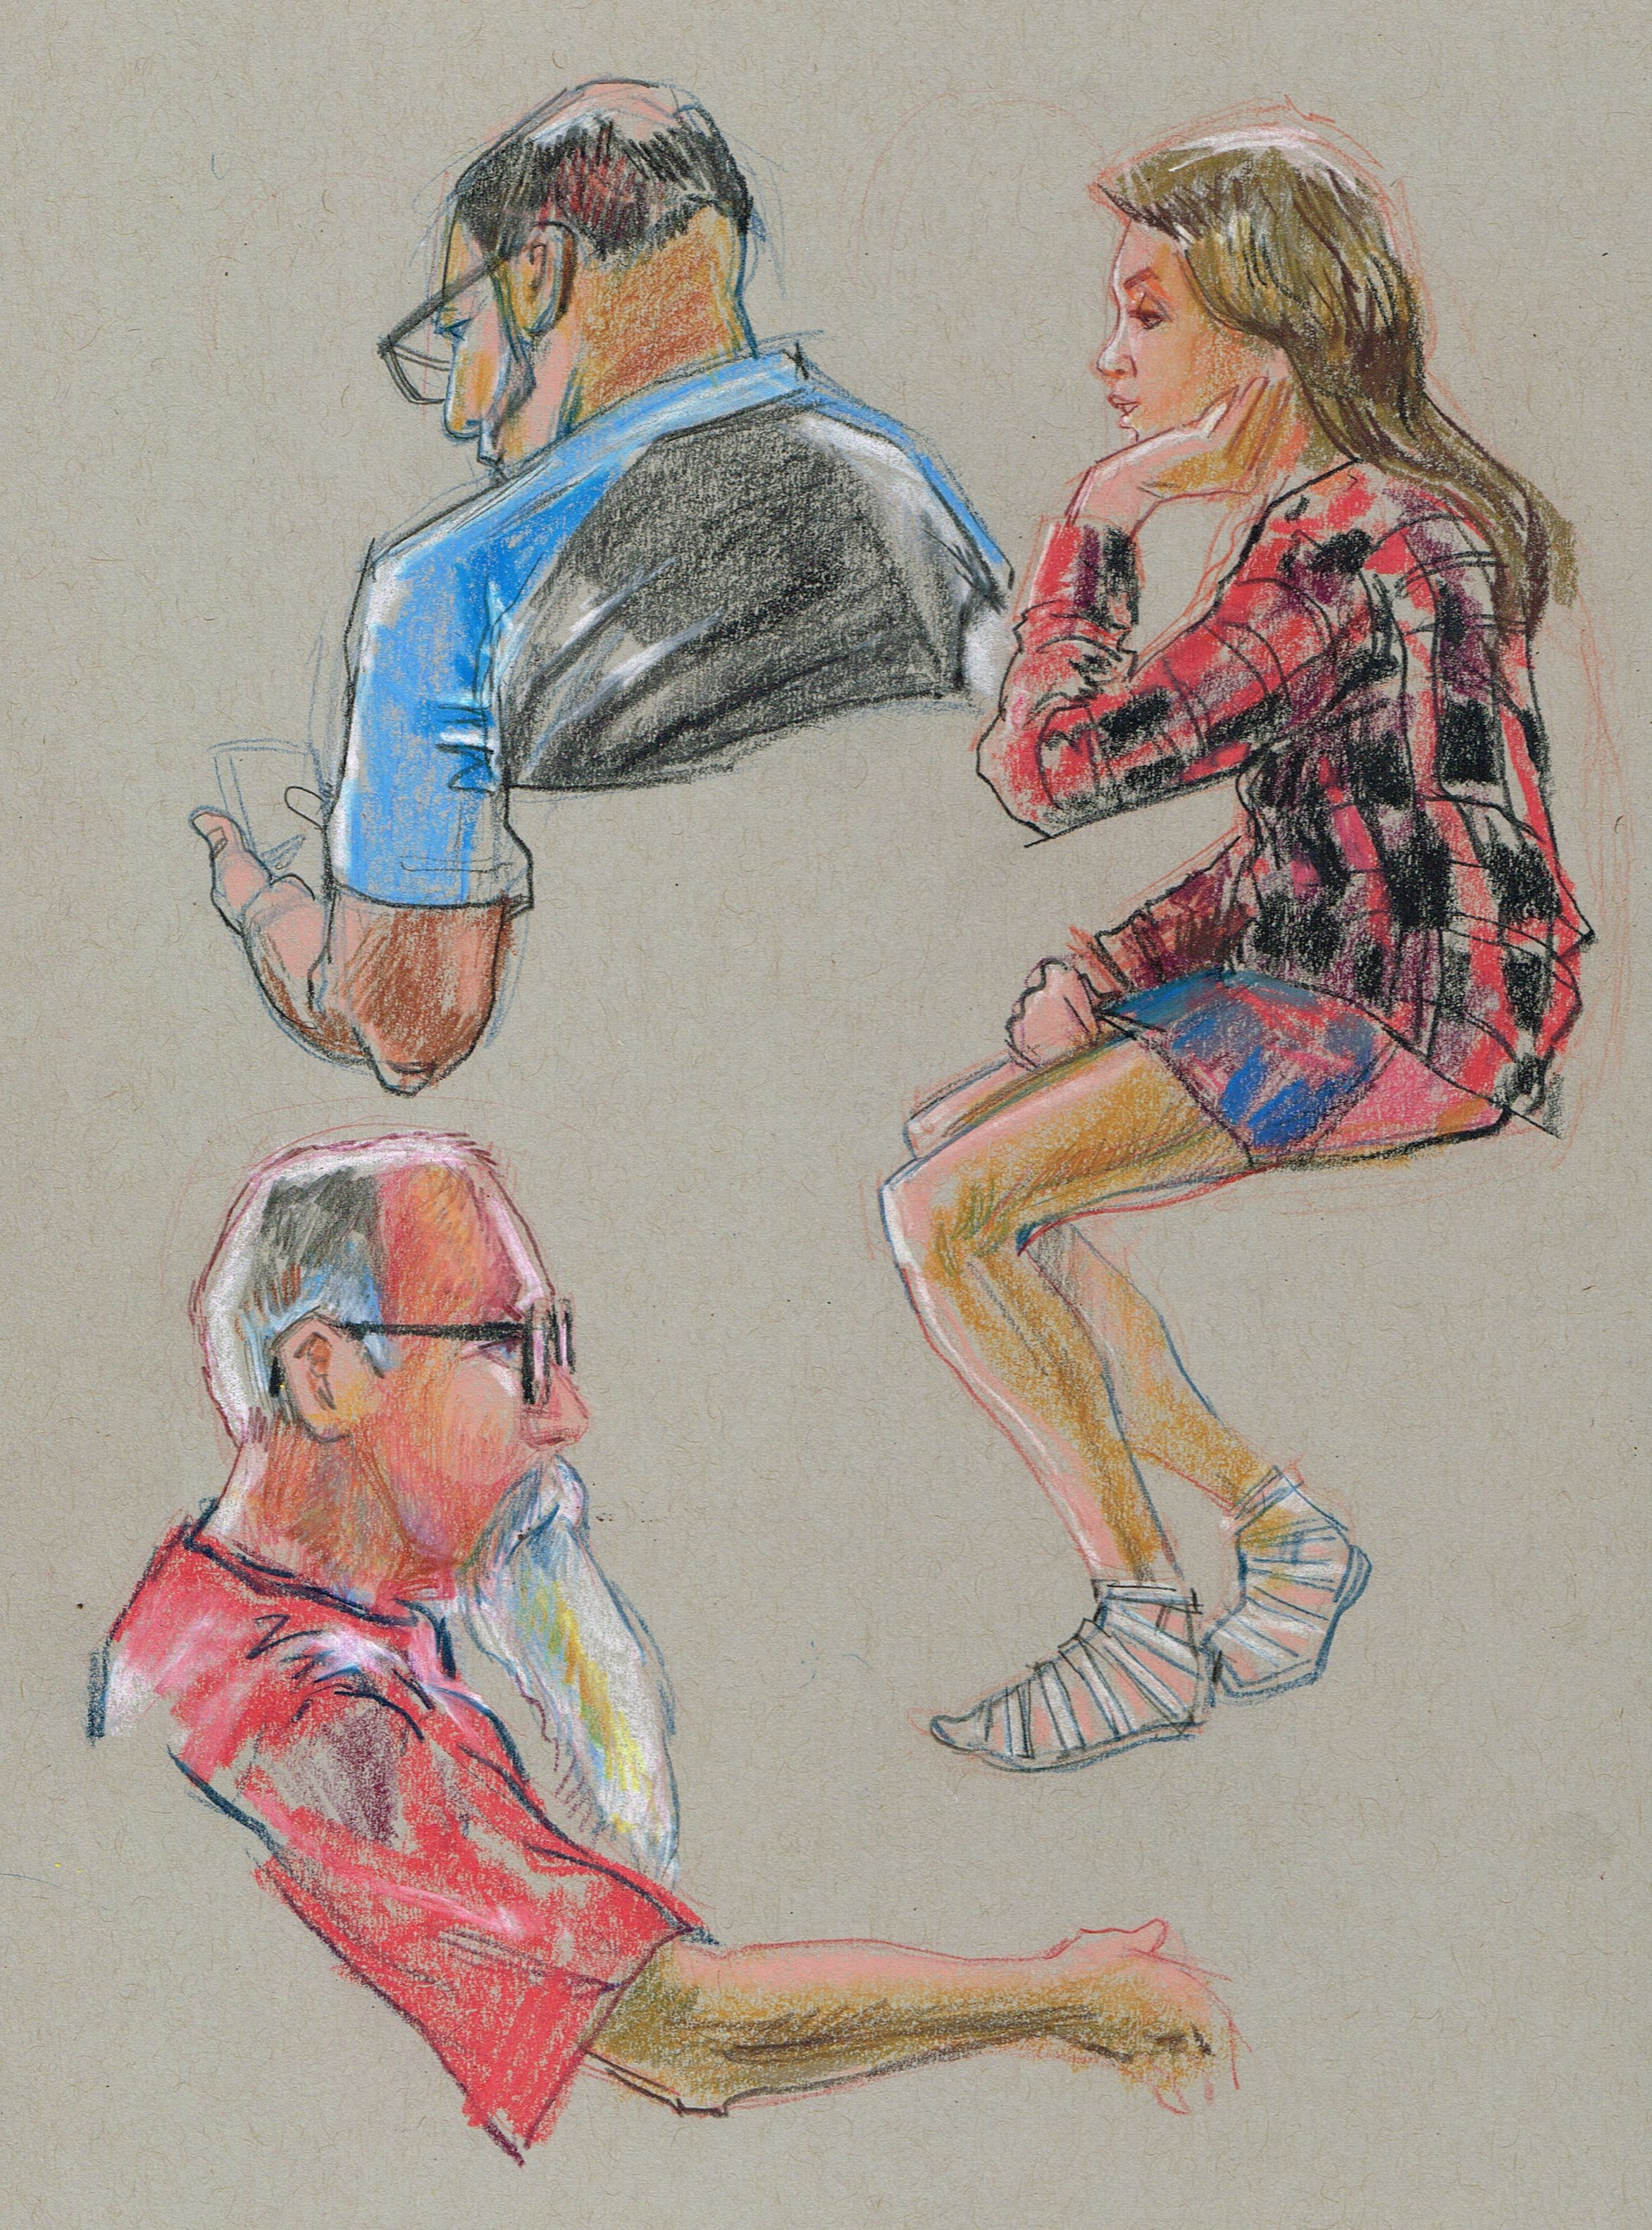 summer concert goers in the plaza colored pencil on toned sketchbook artist gary geraths [ 2345 x 3165 Pixel ]